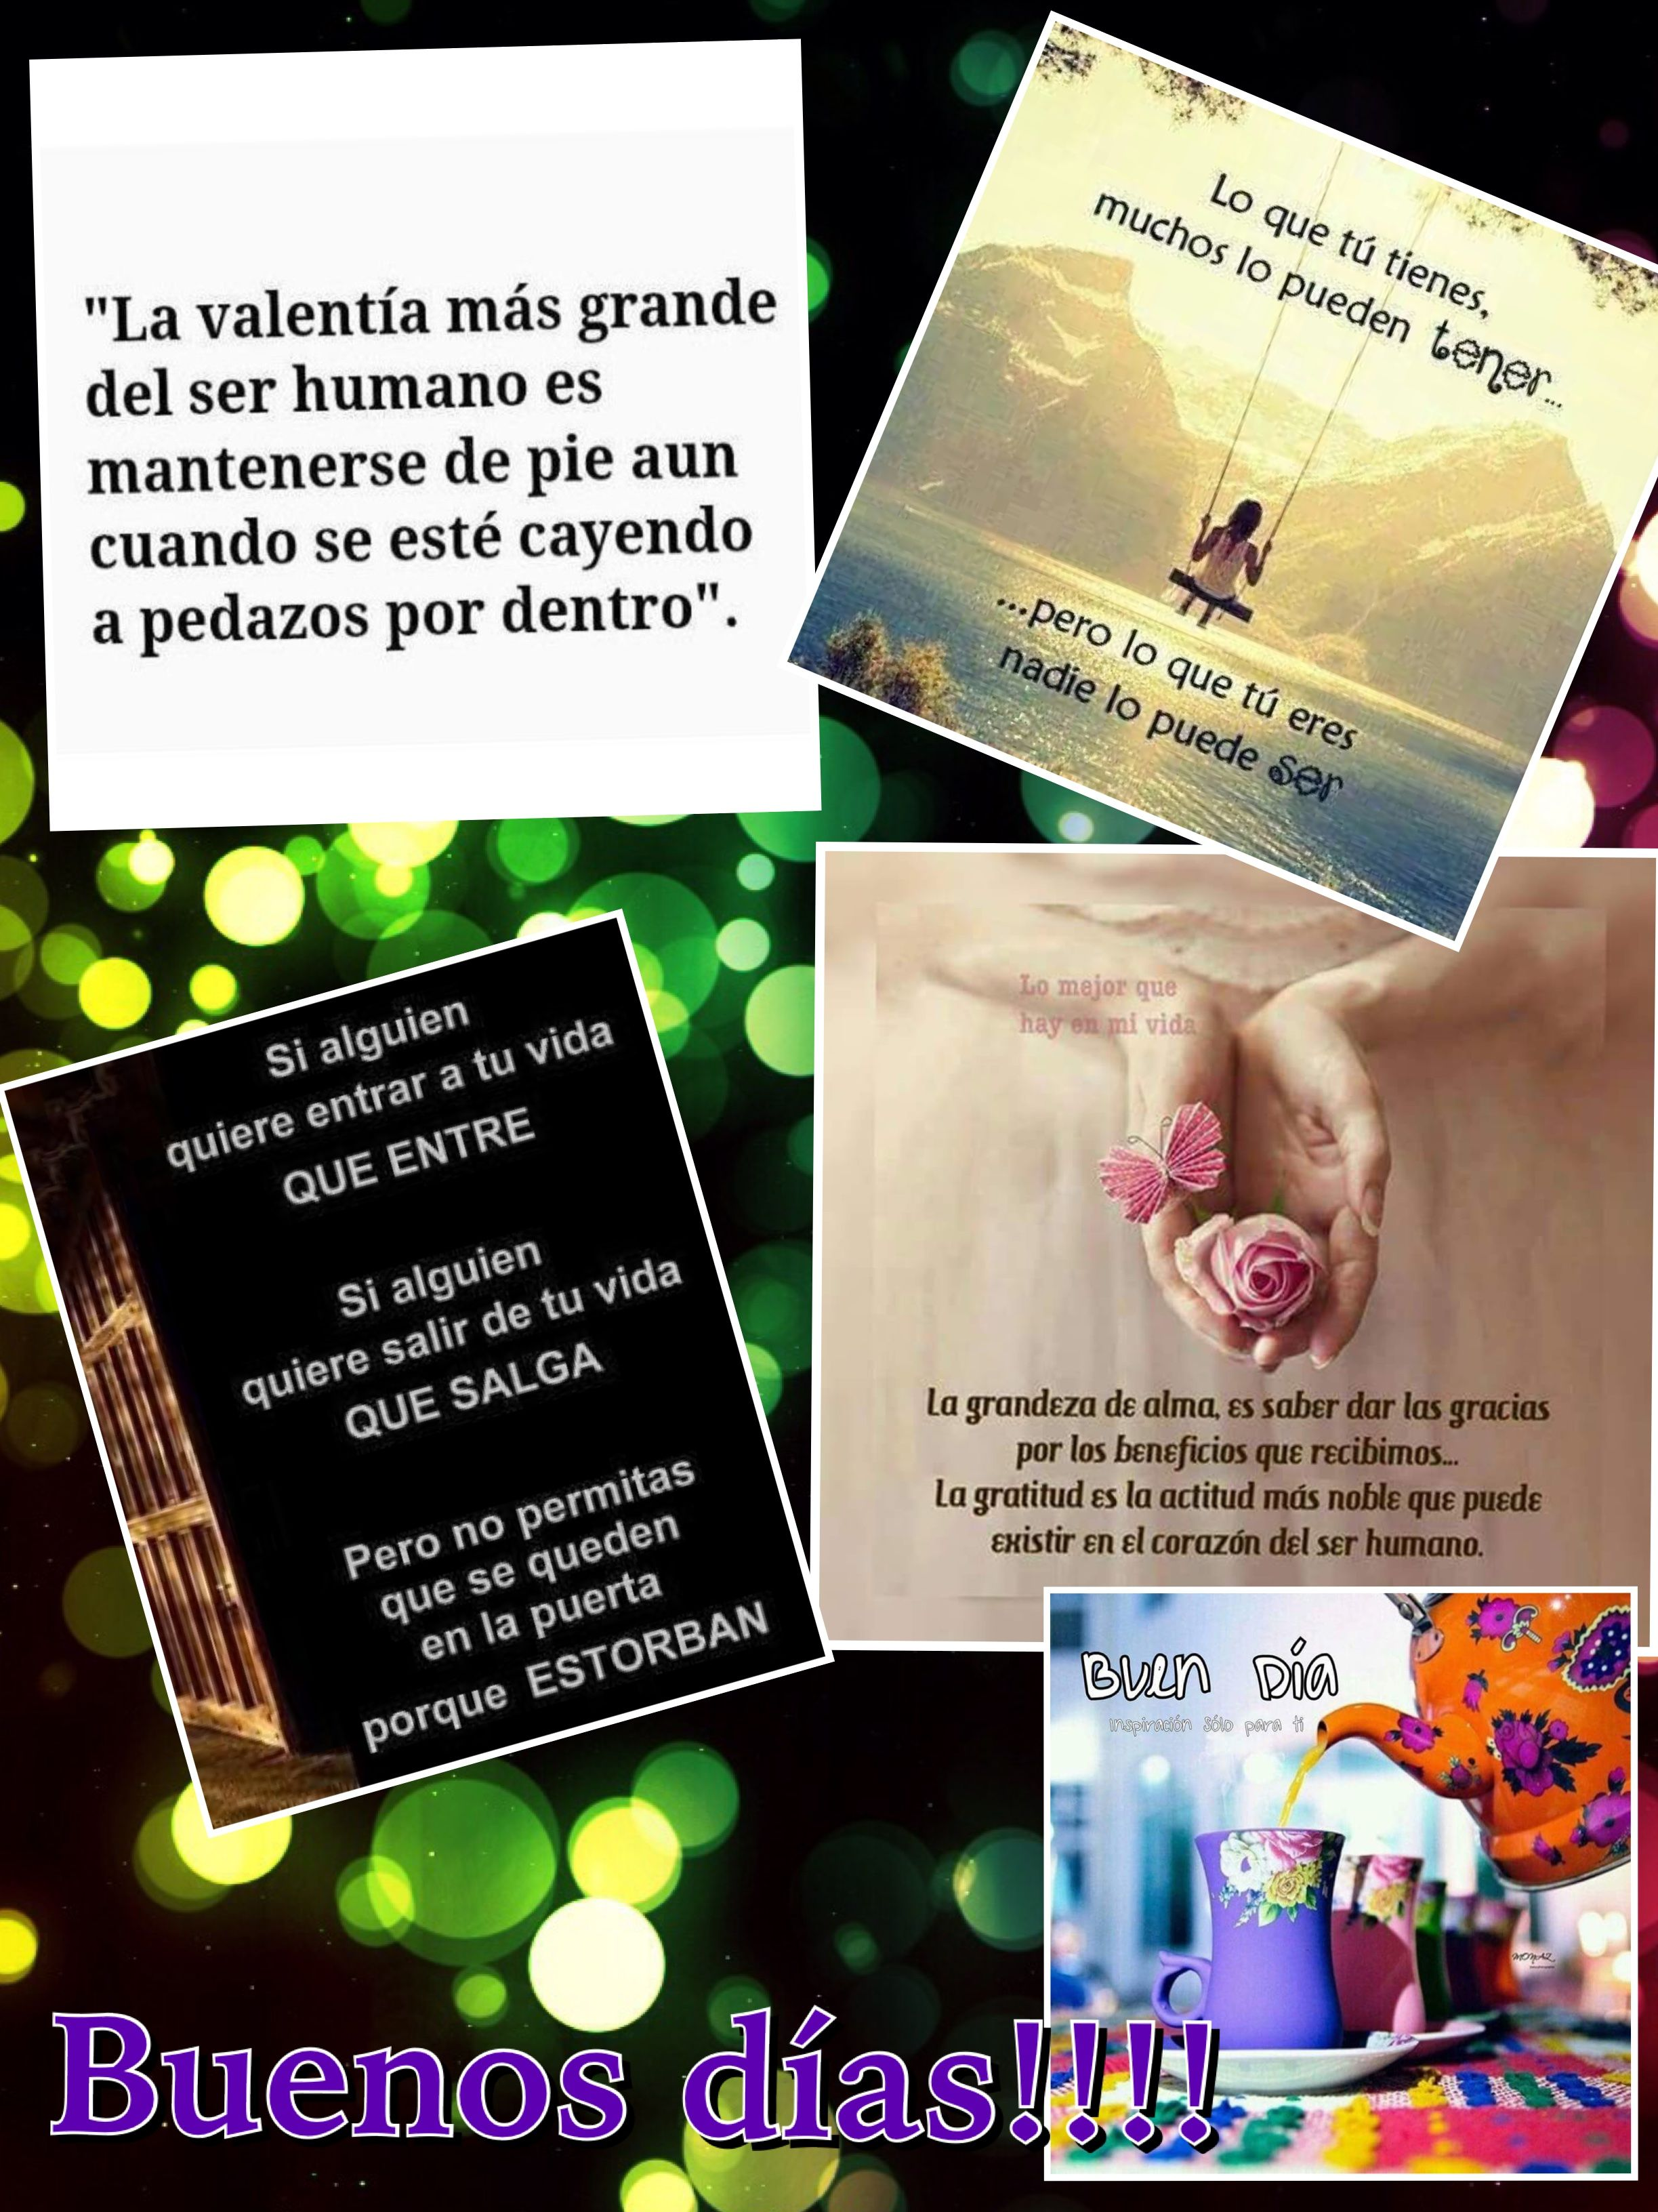 Pin by Marco Lascano on Reflexiones y Memes | Pinterest | Collage